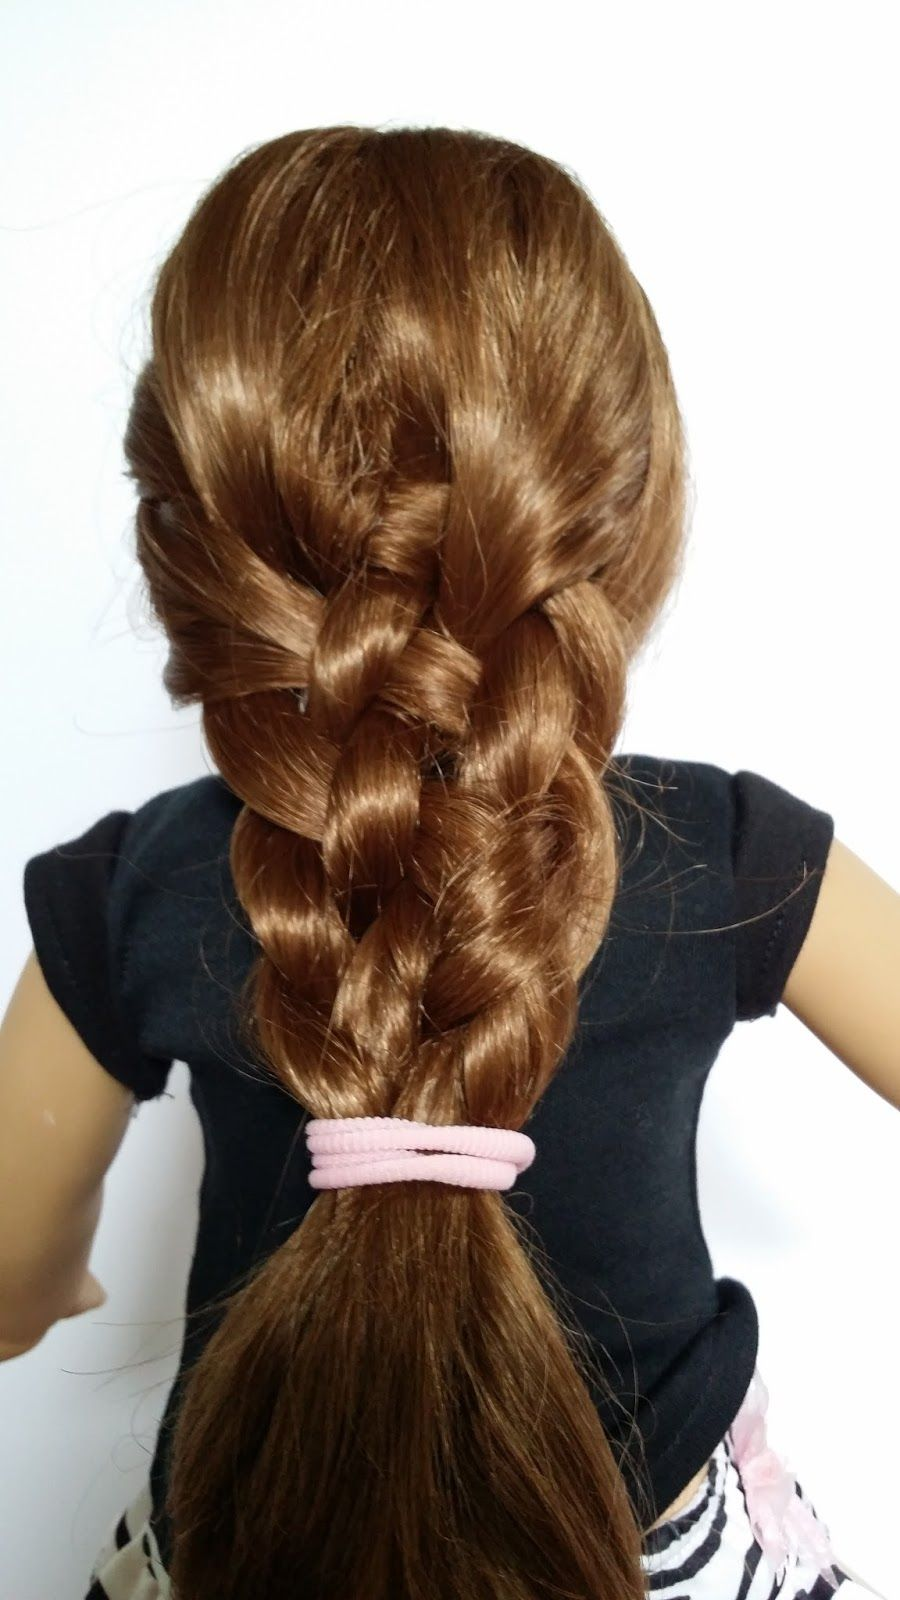 American girl doll crafts and fun doll hairstyle 6